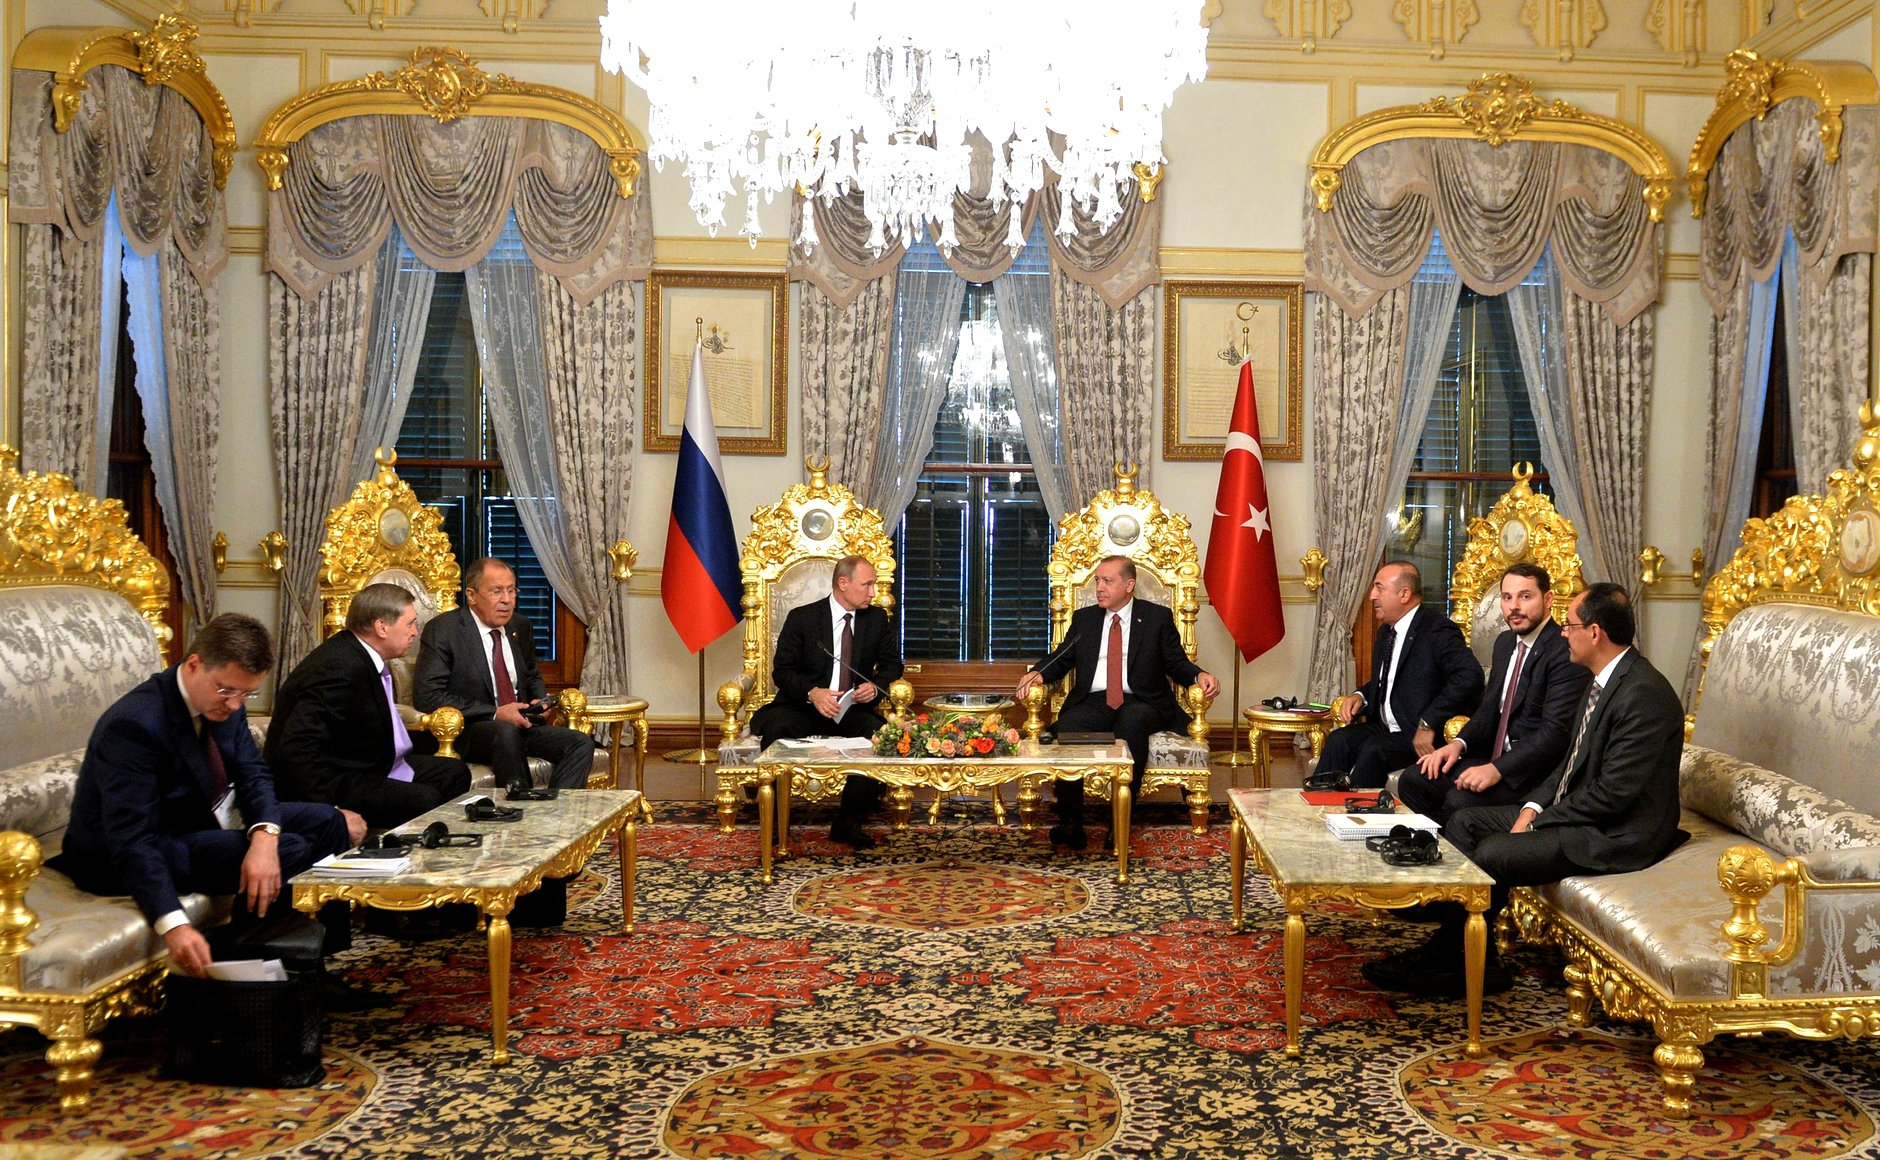 Russian President Vladimir Putin met with Turkish President Recep Tayyip Erdogan on Oct. 10 within the framework of the World Energy Congress in Istanbul.